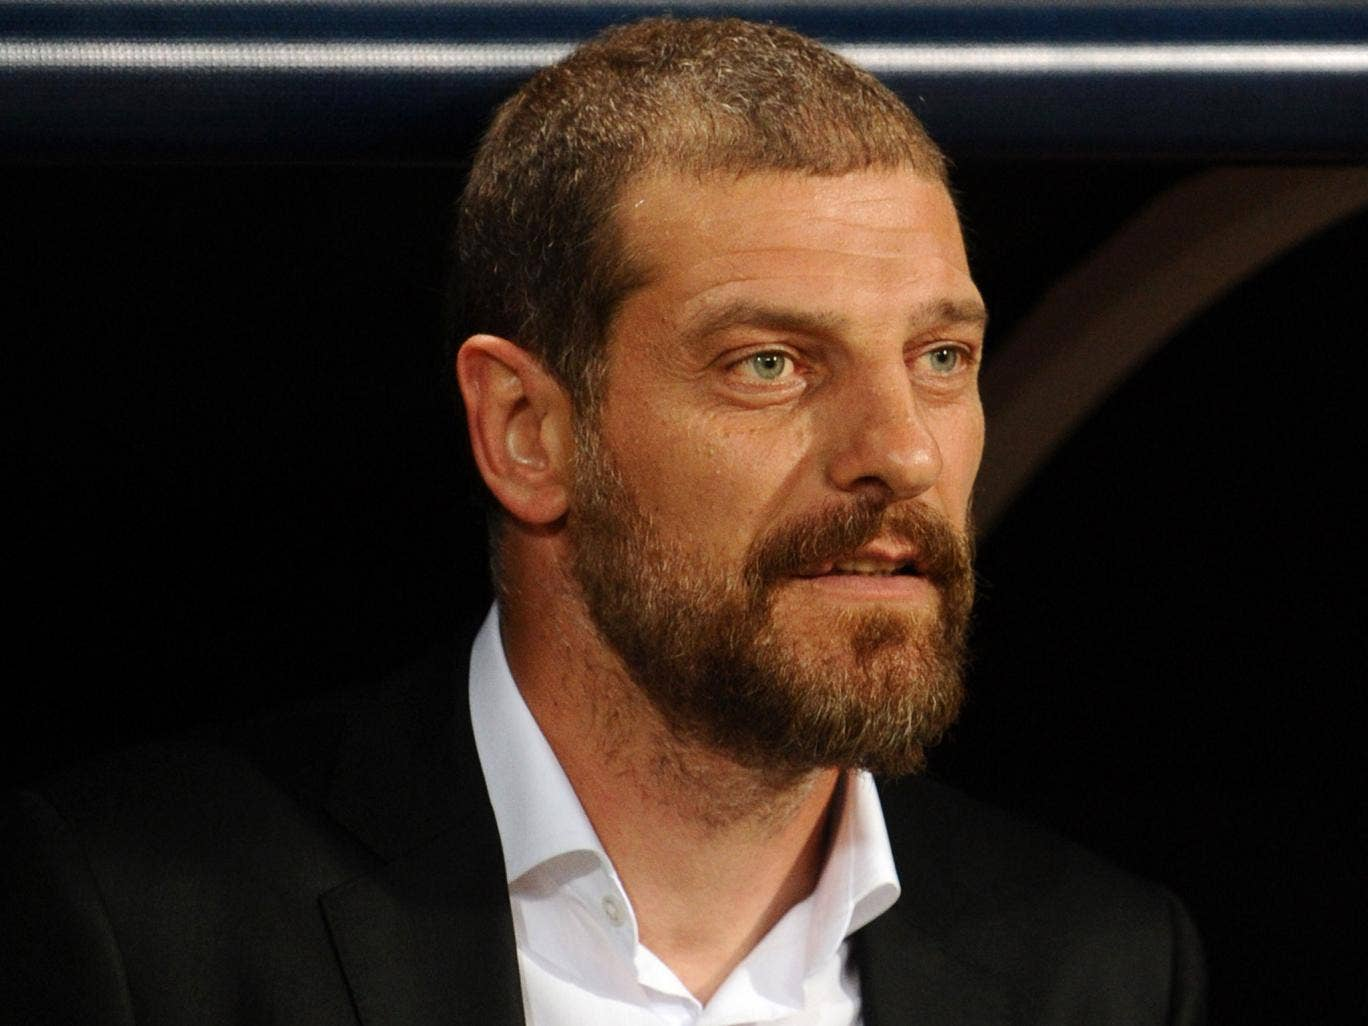 Slaven Bilic looks on from the touchline